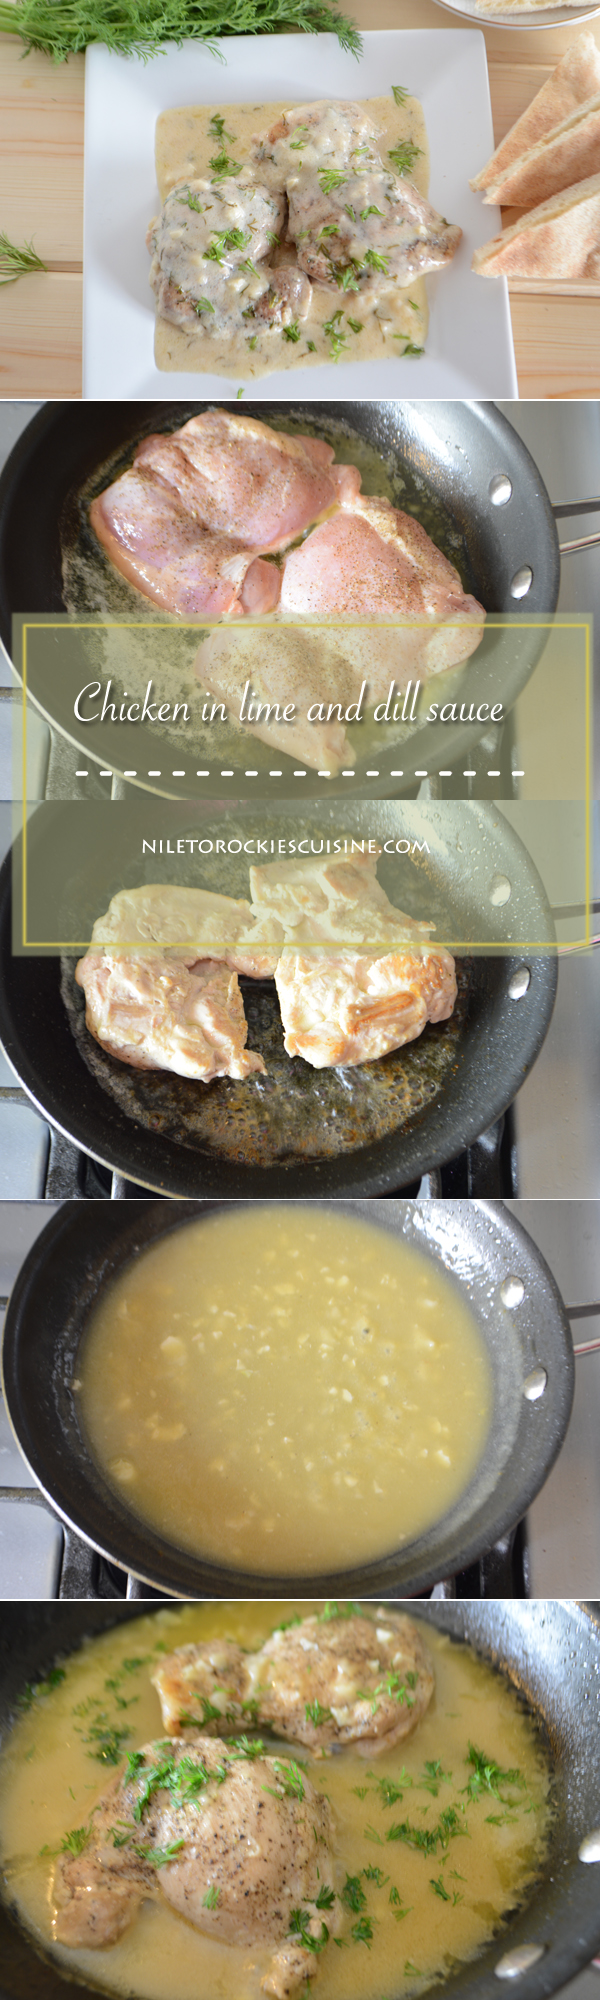 healthy chicken recipe